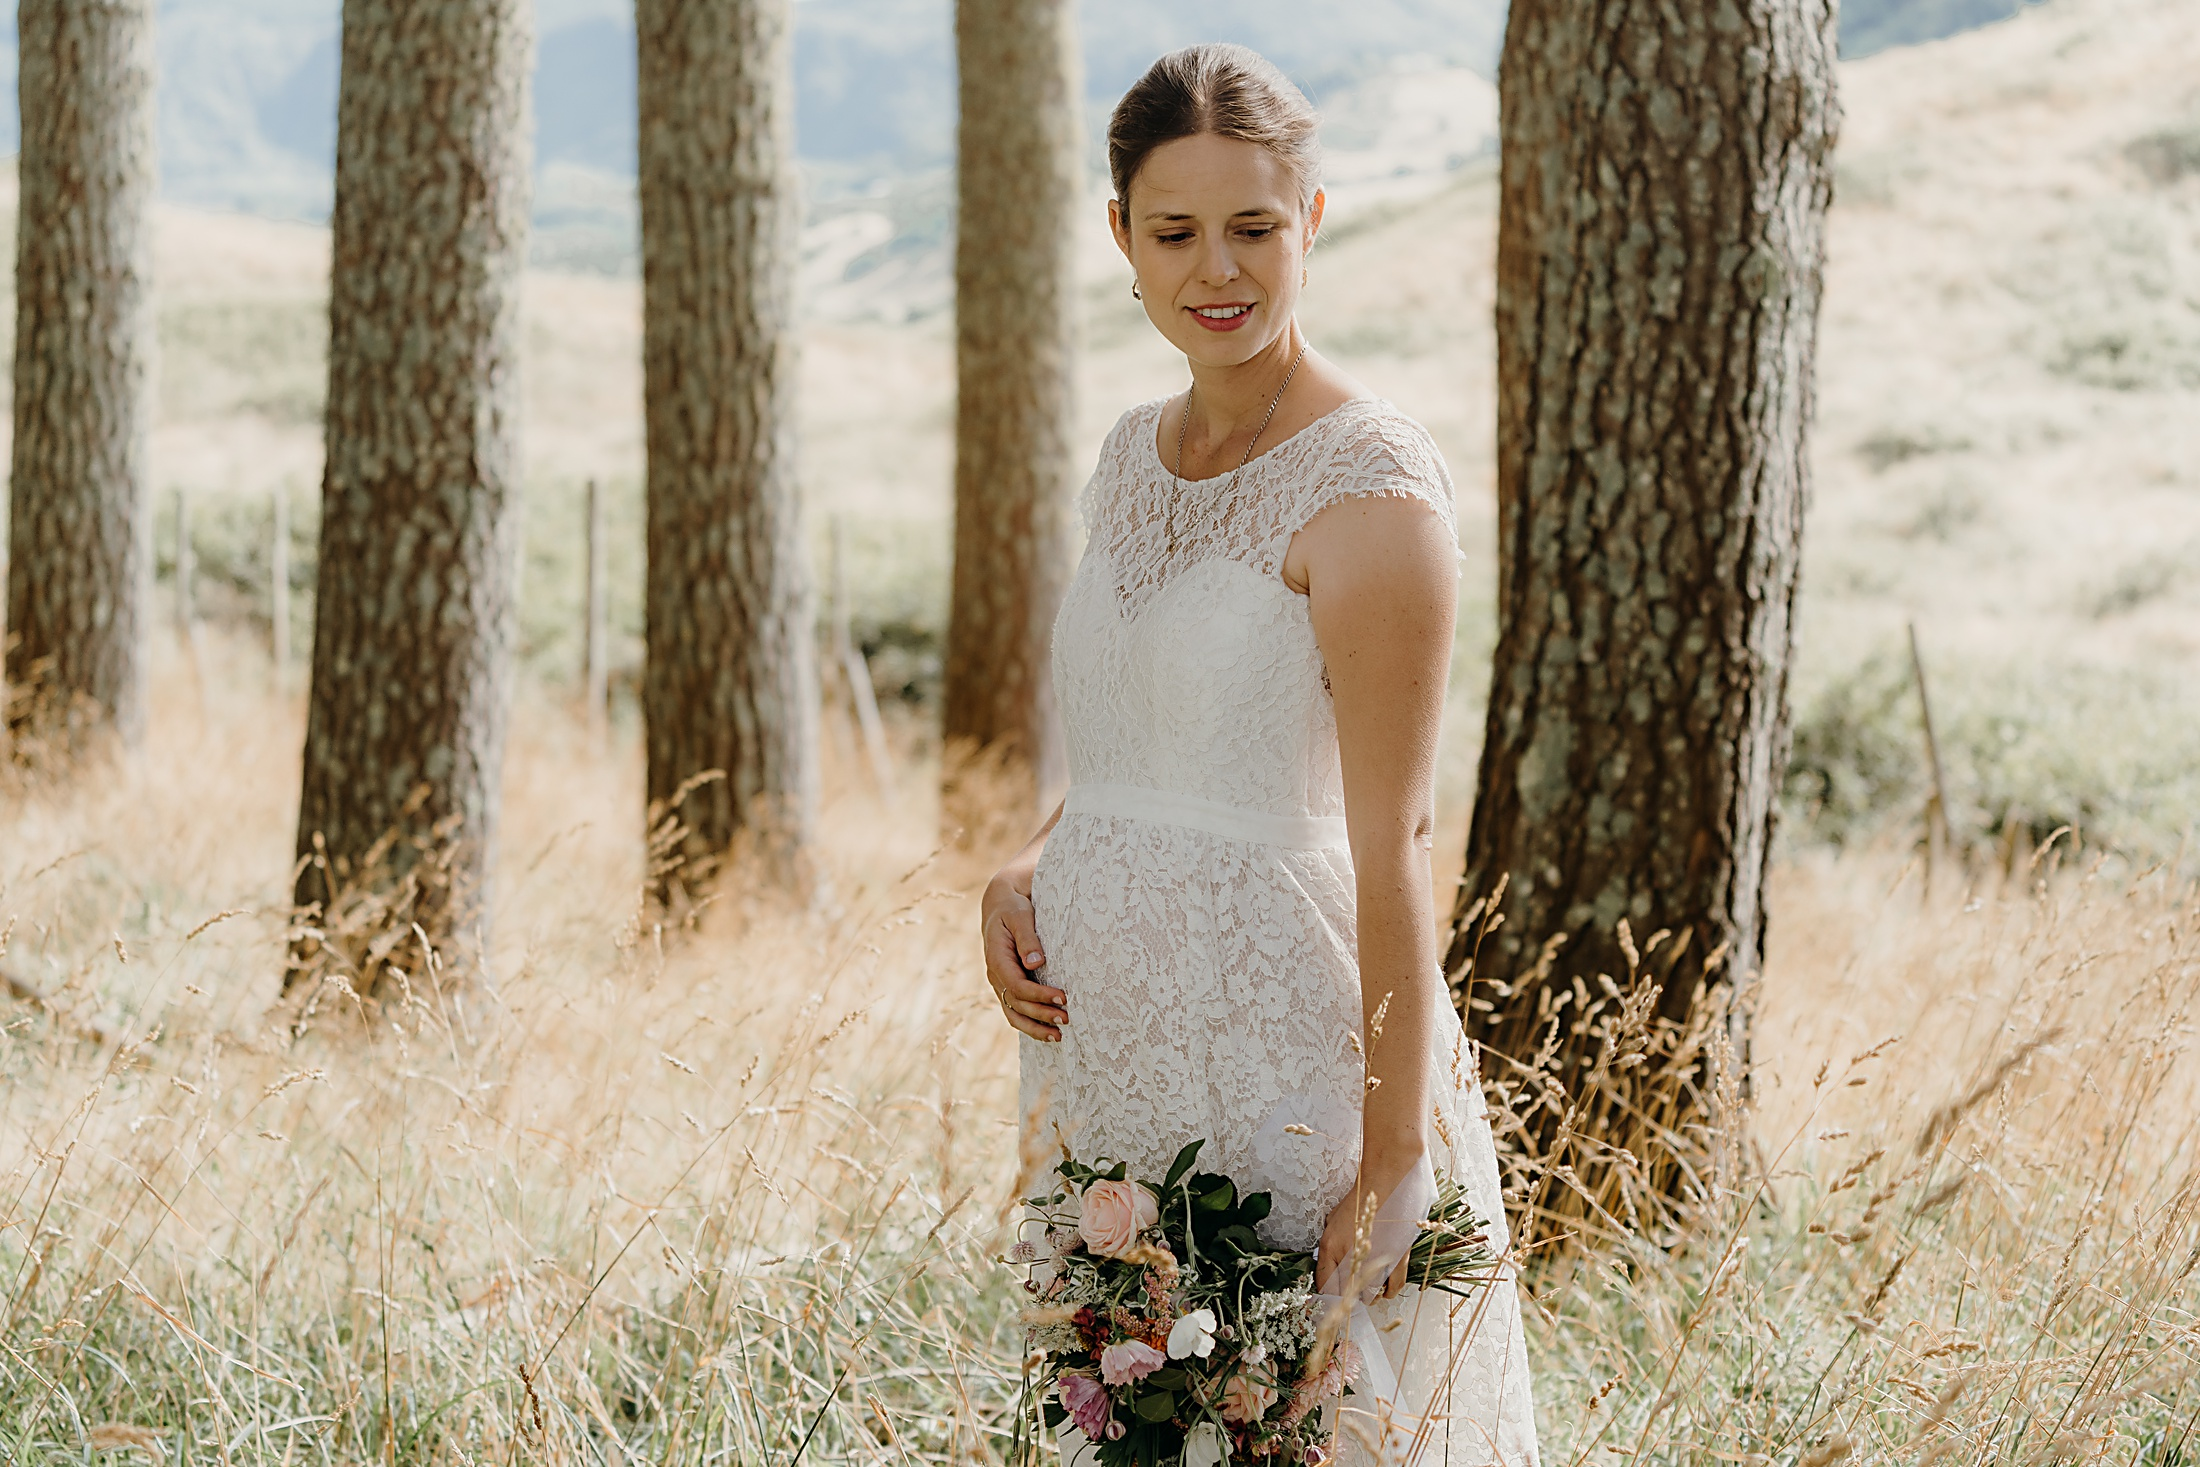 Daisy by Katie Yeung Wedding Dress and pregnant bride